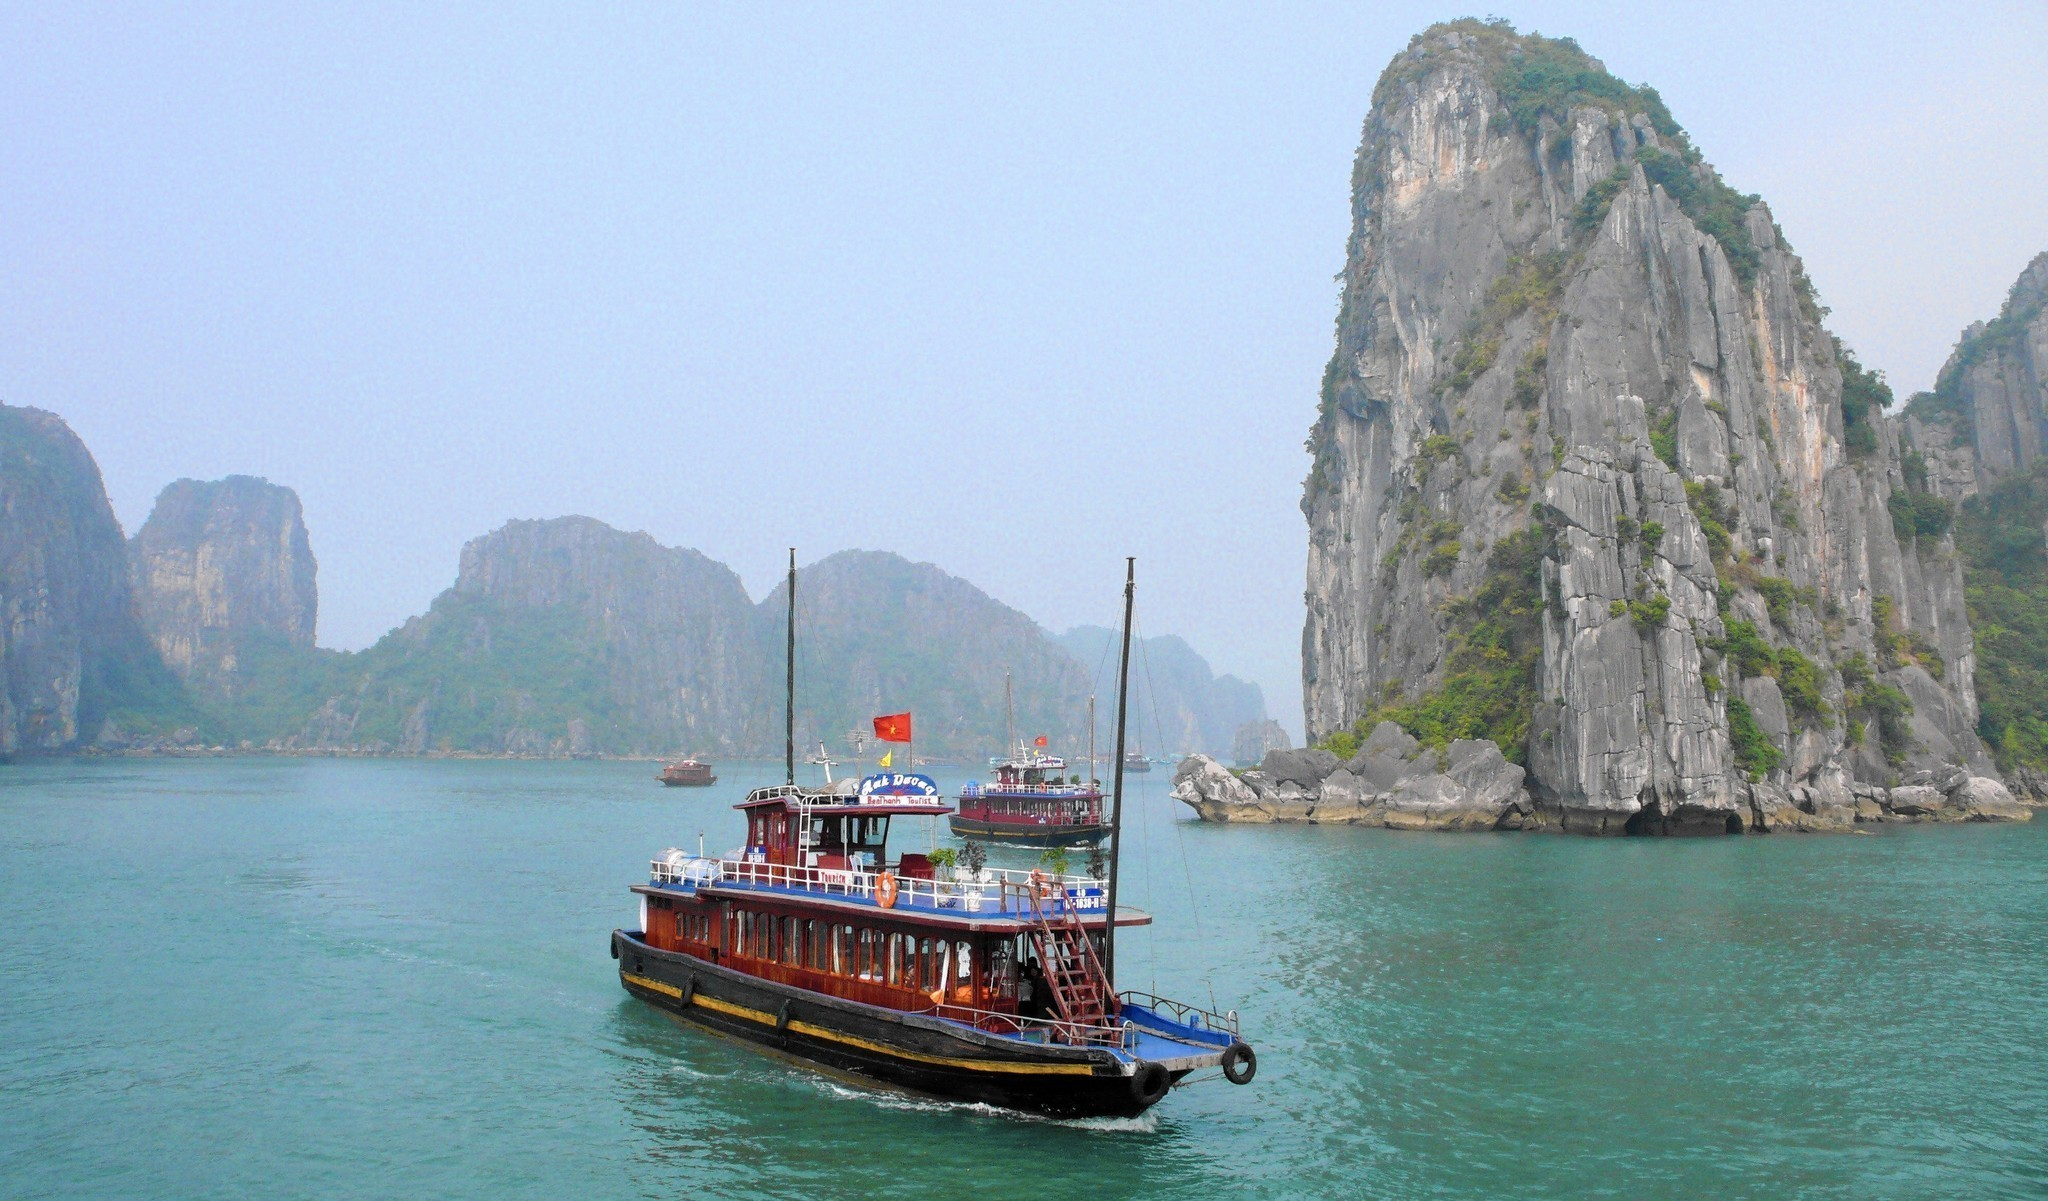 10 nights in Vietnam for $1,799, including air